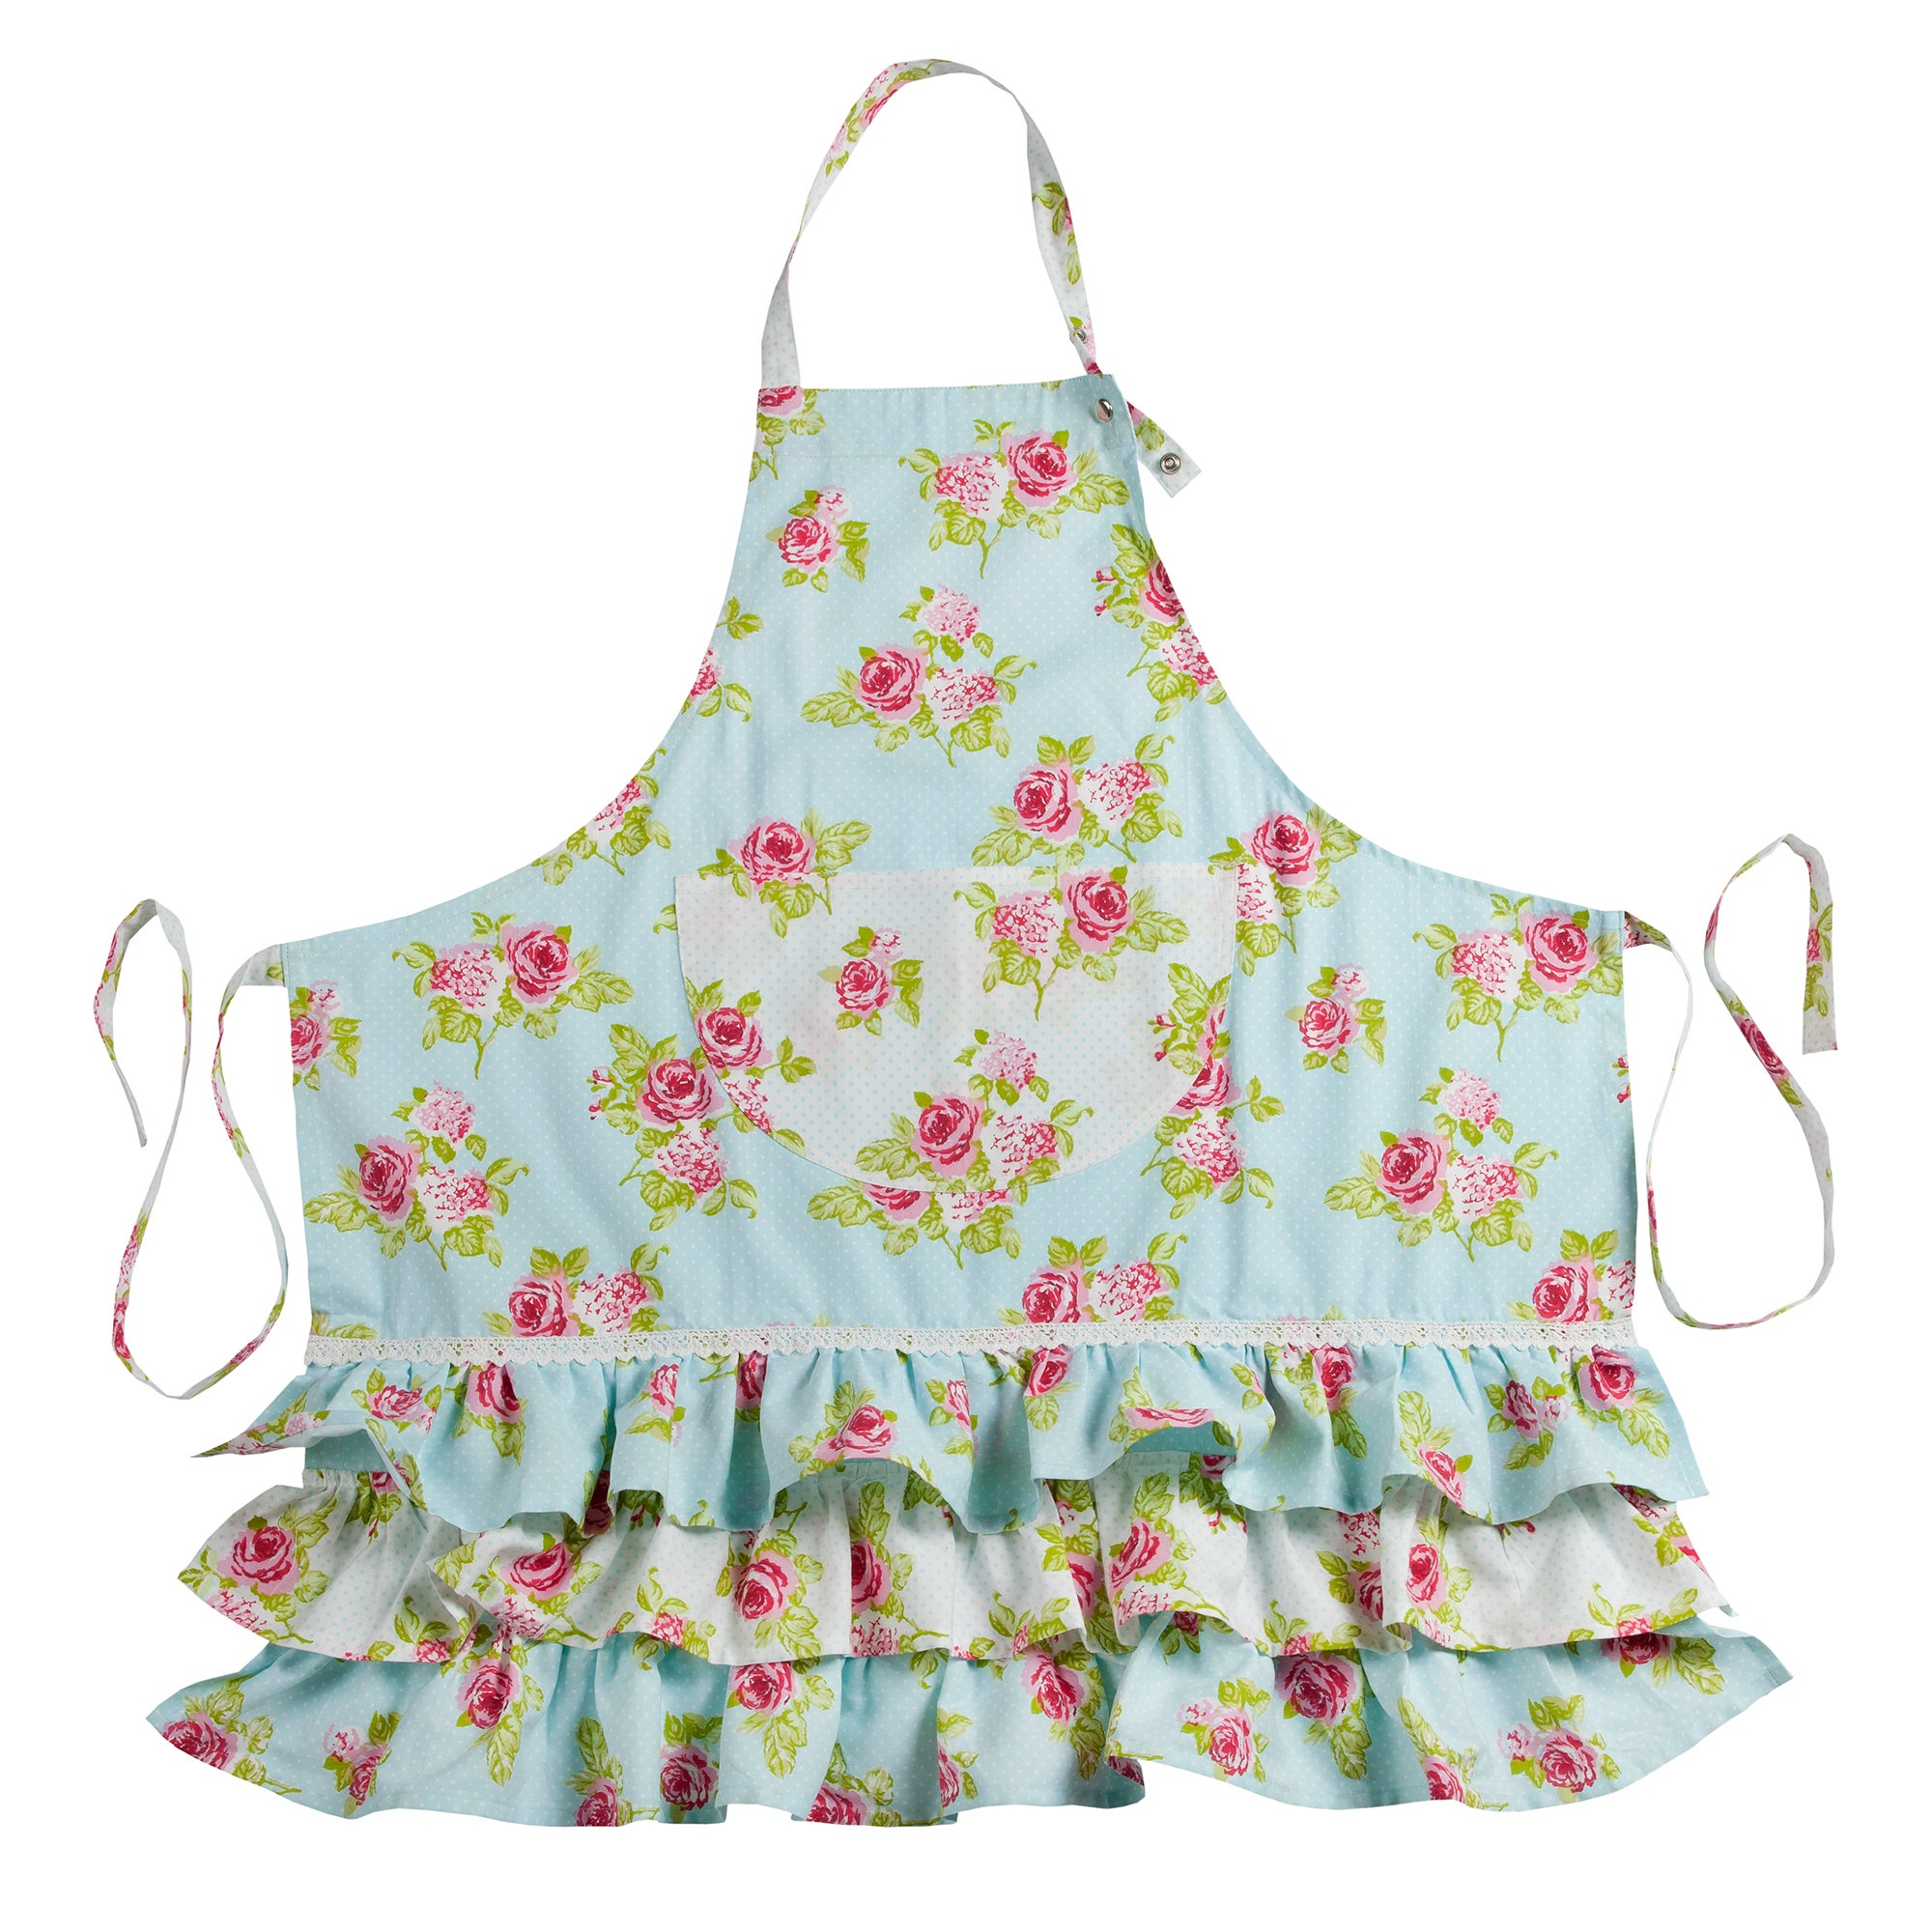 Rose and Ellis Clarendon Collection Apron